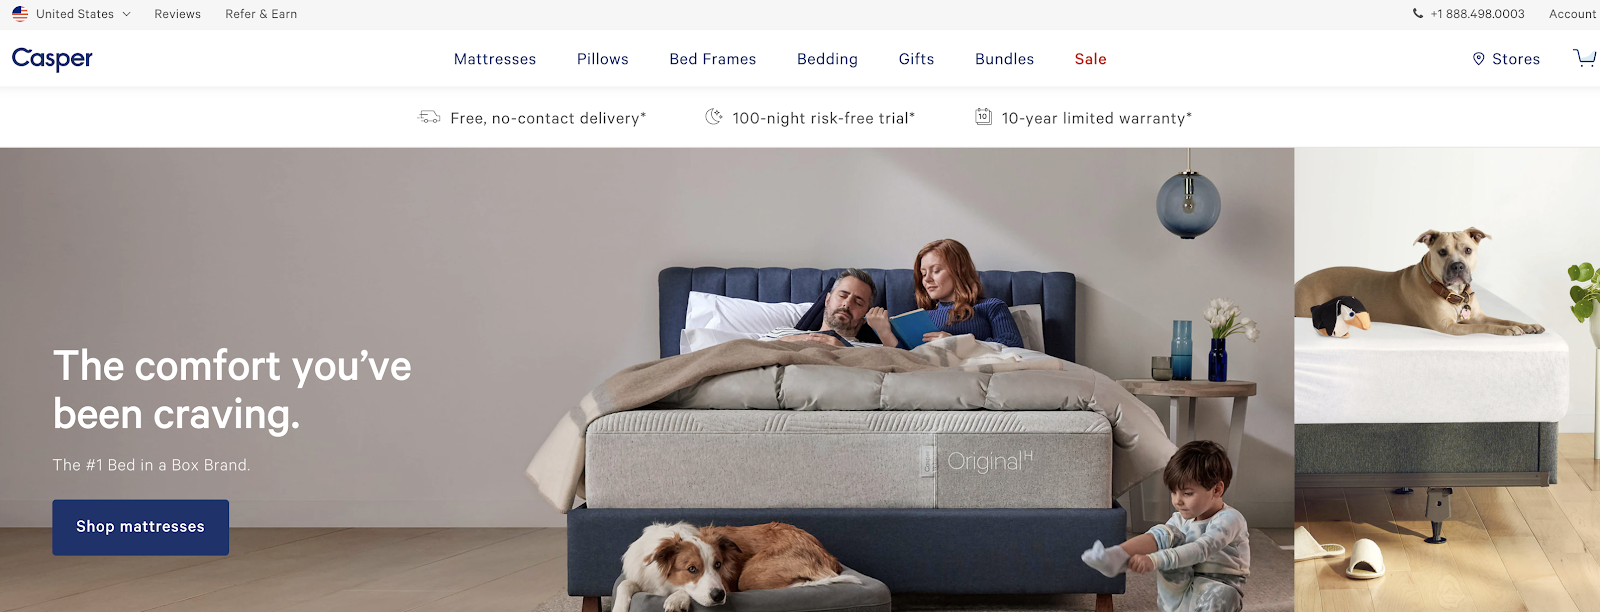 Casper Mattress Homepage Screenshot (Example)